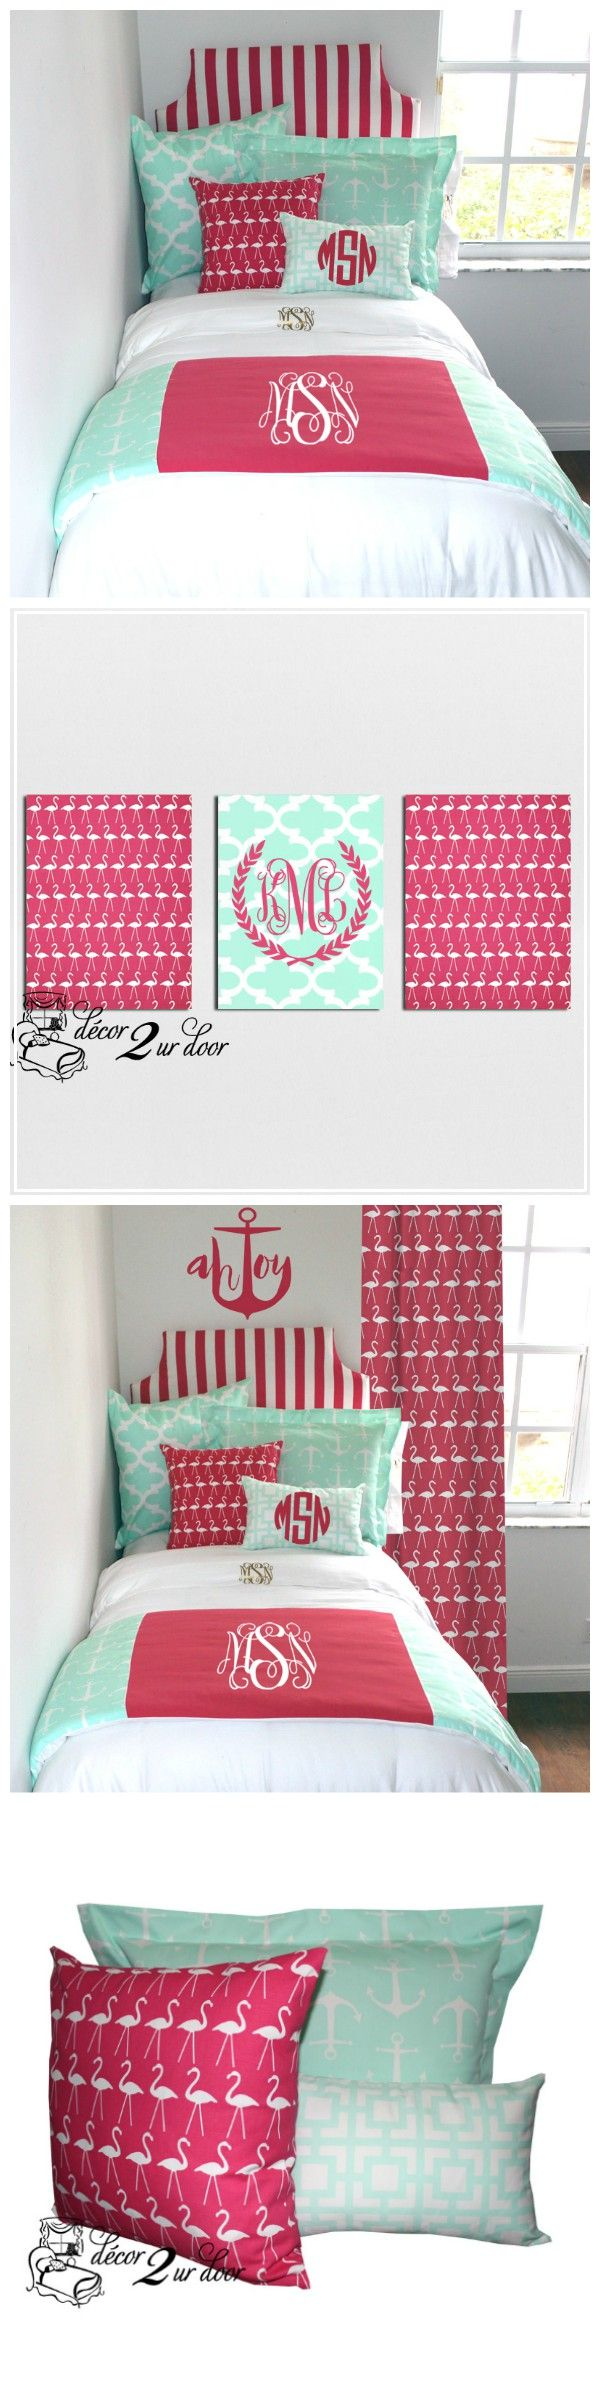 A Twist On Our Ever Popular Nautical Dorm Bedding Designs. This Nautical  Dorm Bedding Features Anchors, Flamingos, Stripes, And Geometrics.